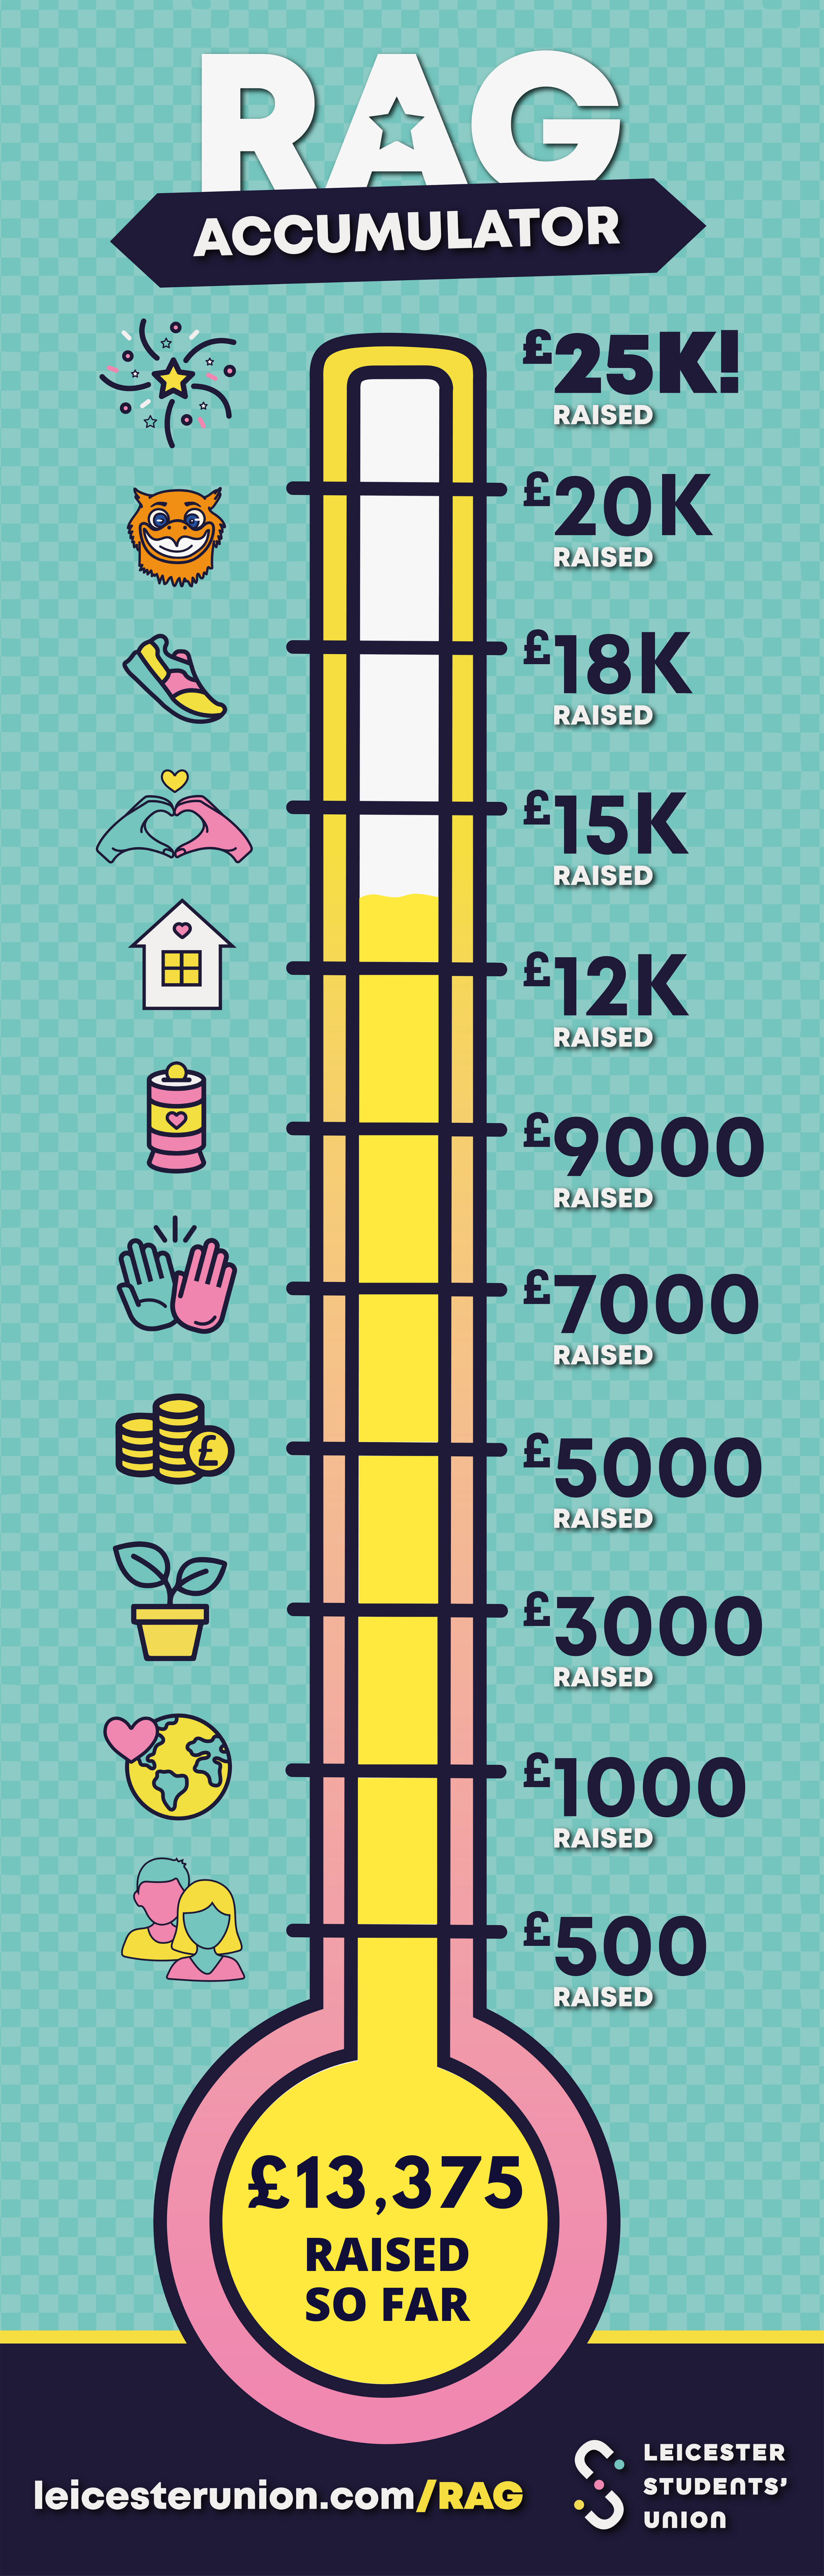 Fundraising thermometer showing £13375 raised so far this academic year.